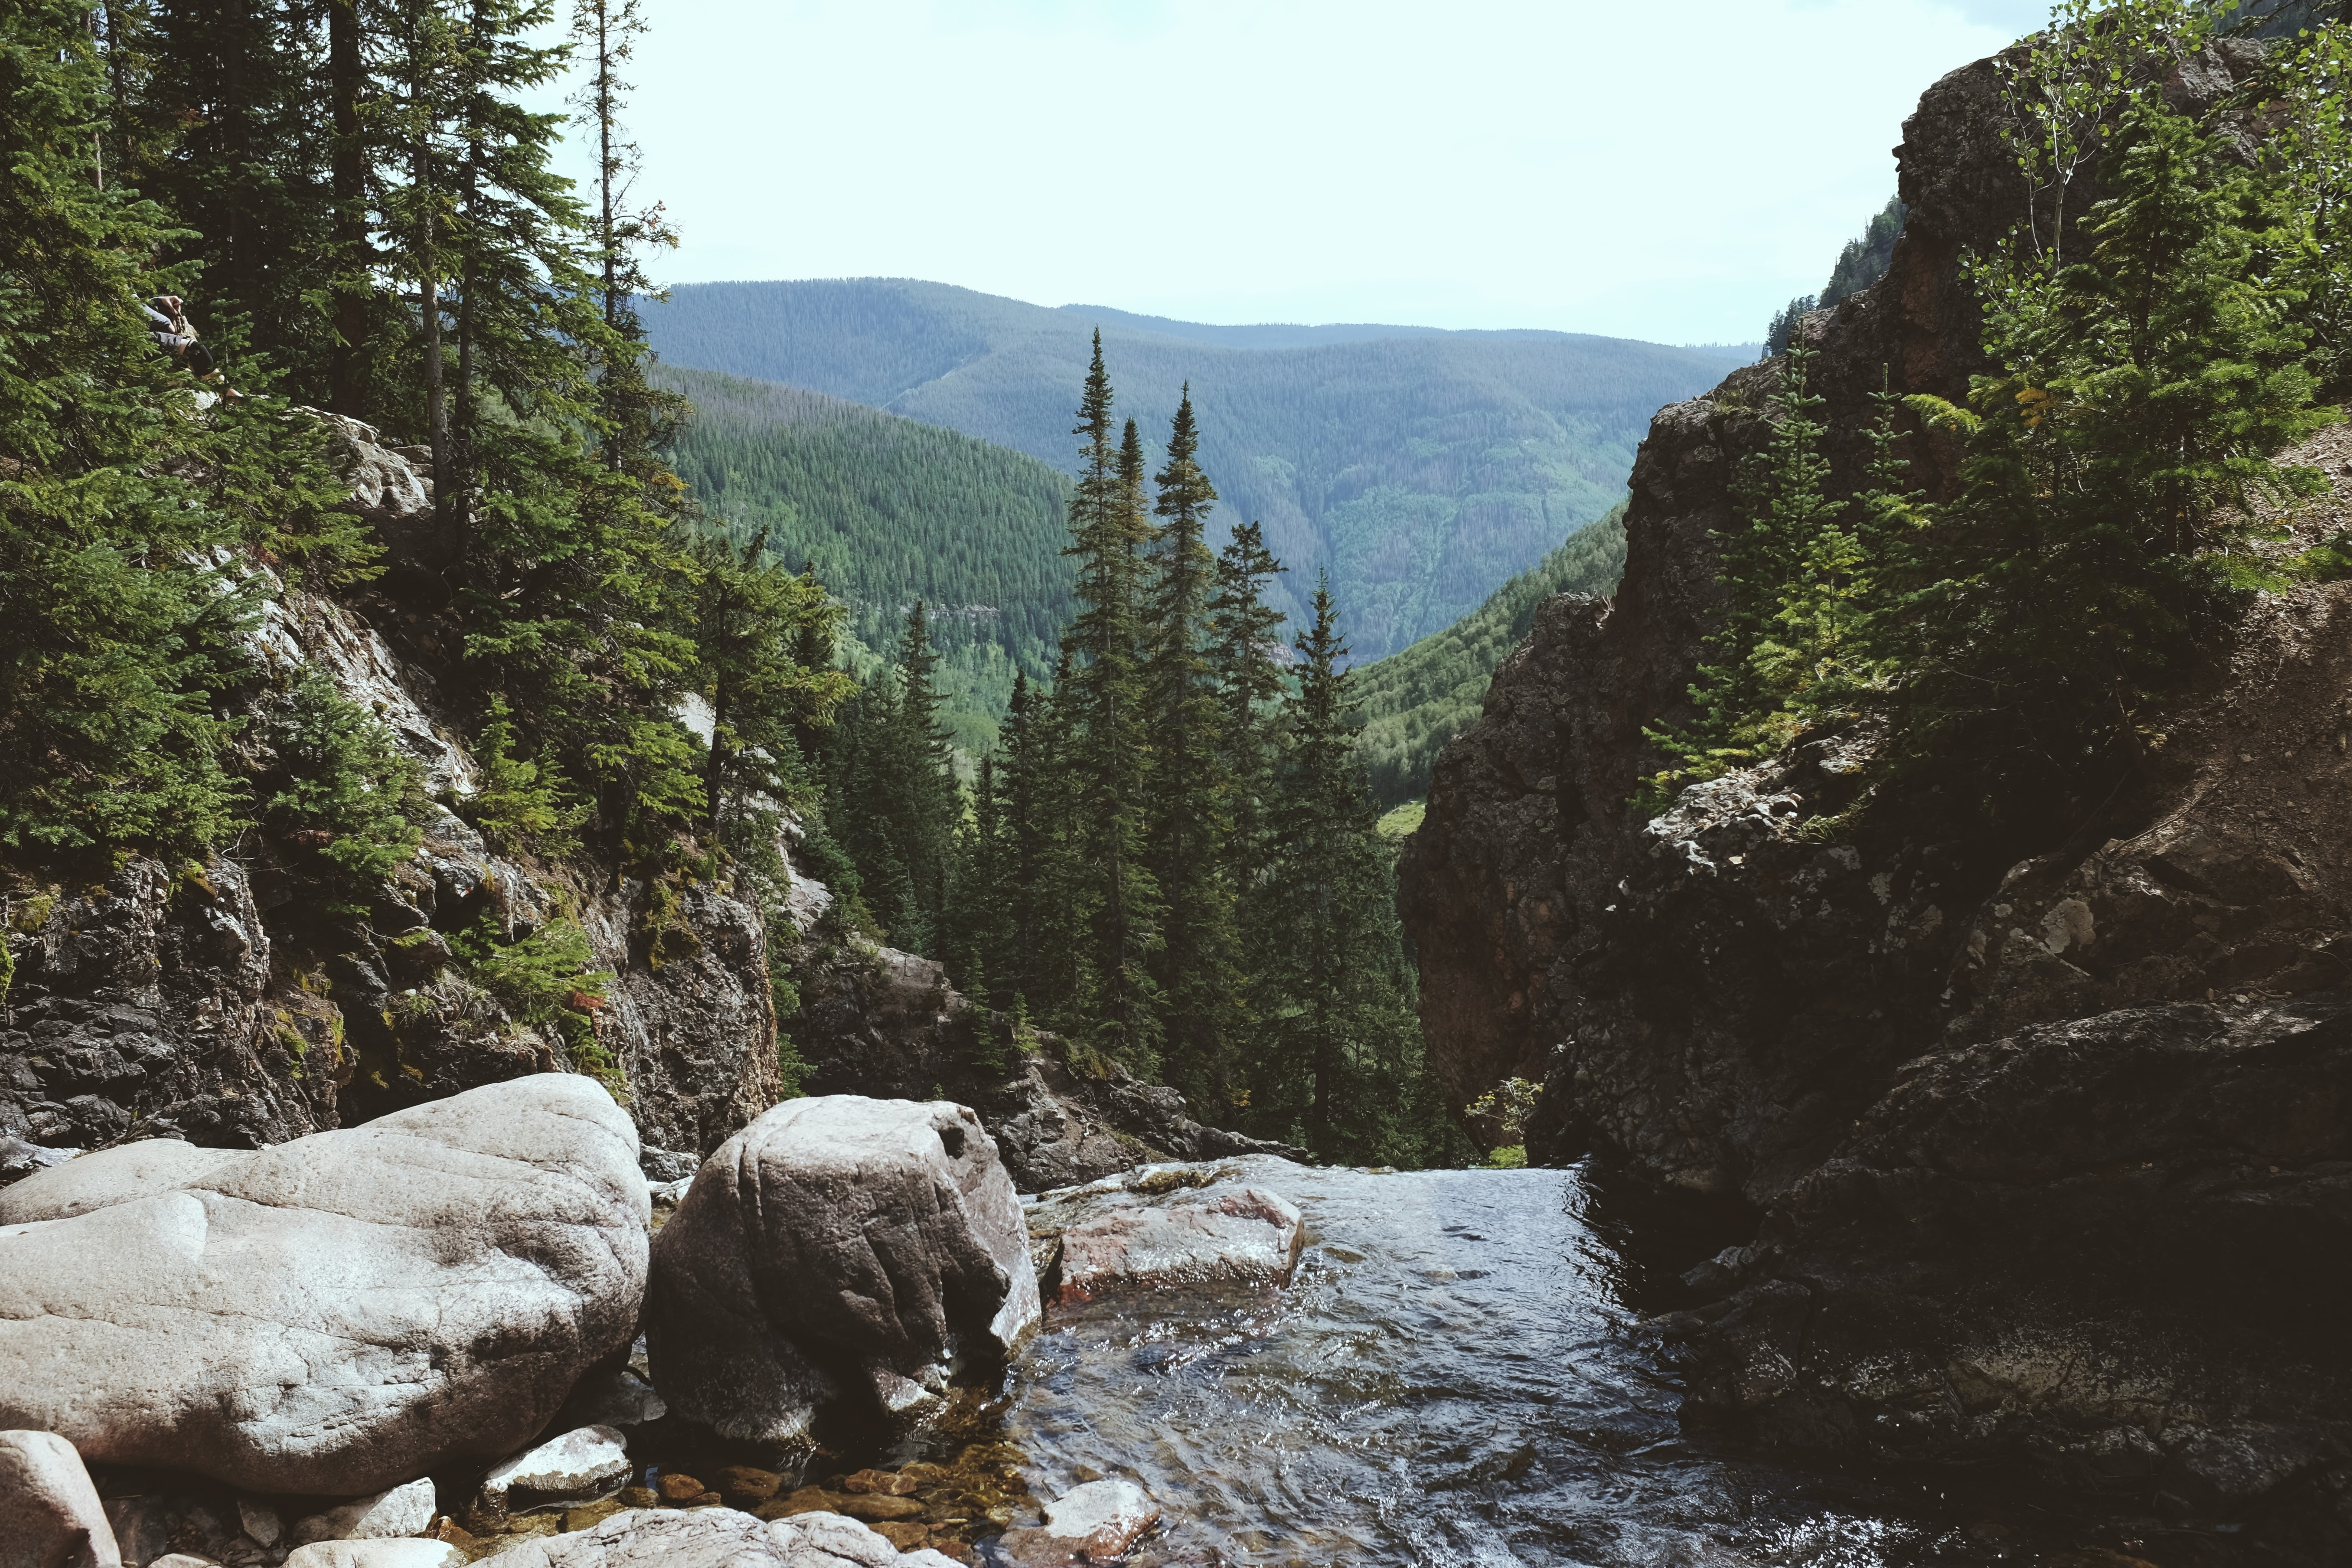 river between rocks and pine trees at daytime